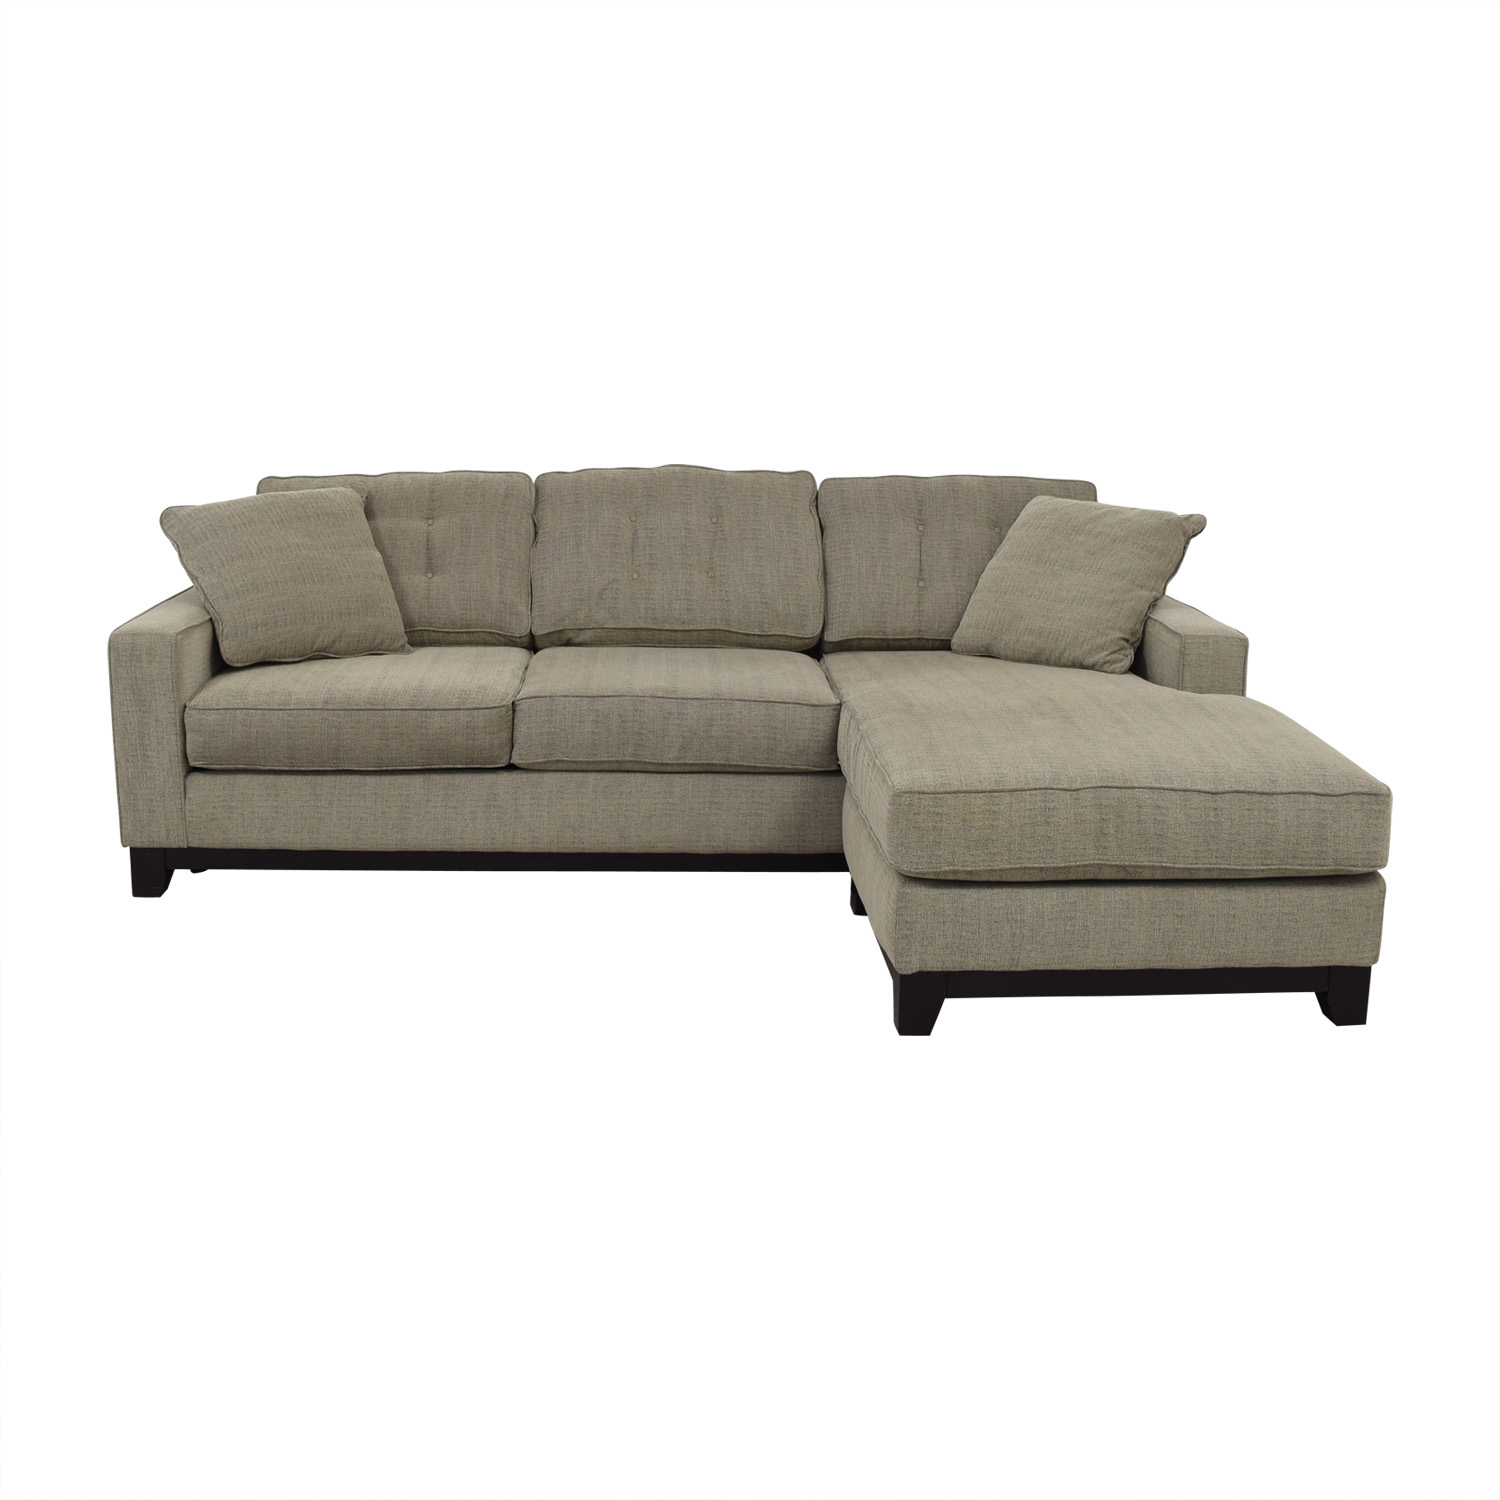 Gray Chaise Sectional Sofas